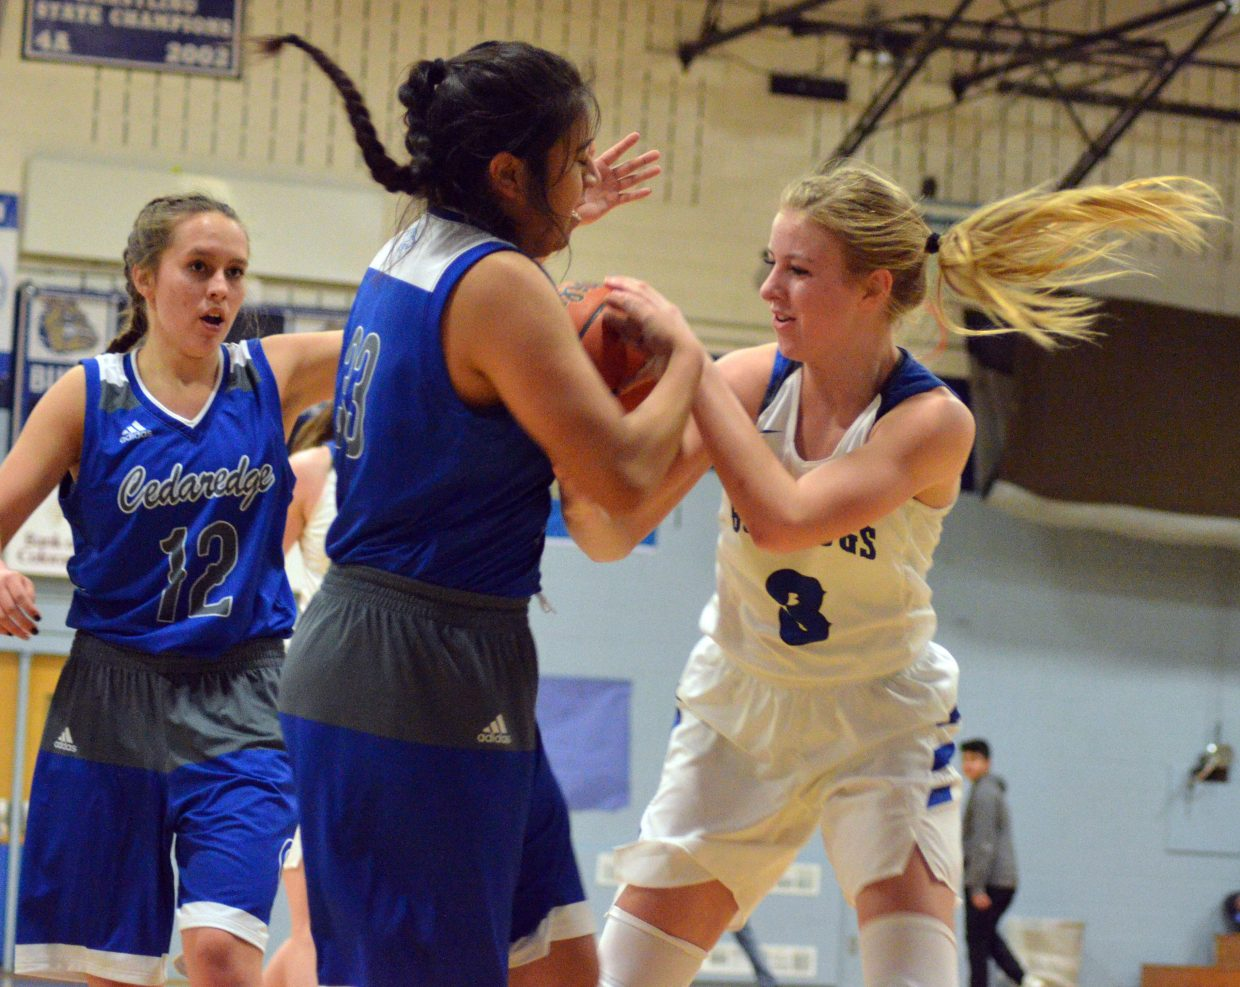 Moffat County High School's Halle Hamilton fights for the rock.